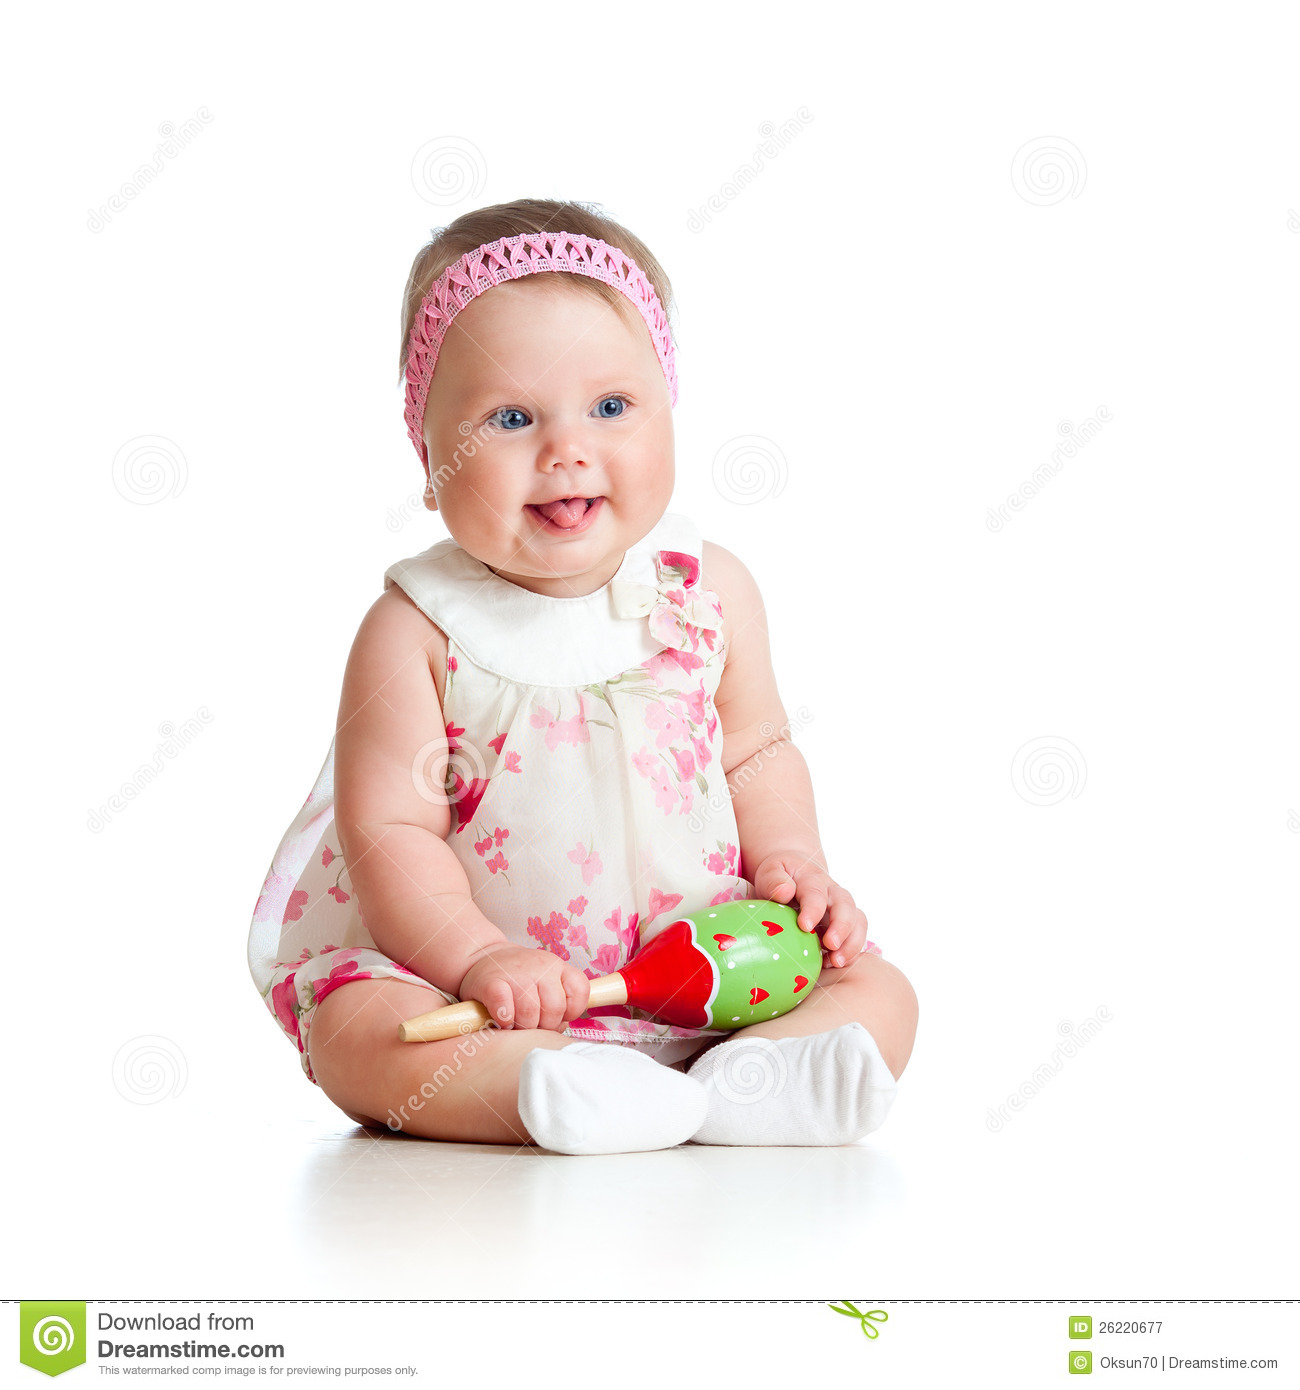 Funny Baby Girl Shocking During Proposal For Marriage Funny Baby Girl